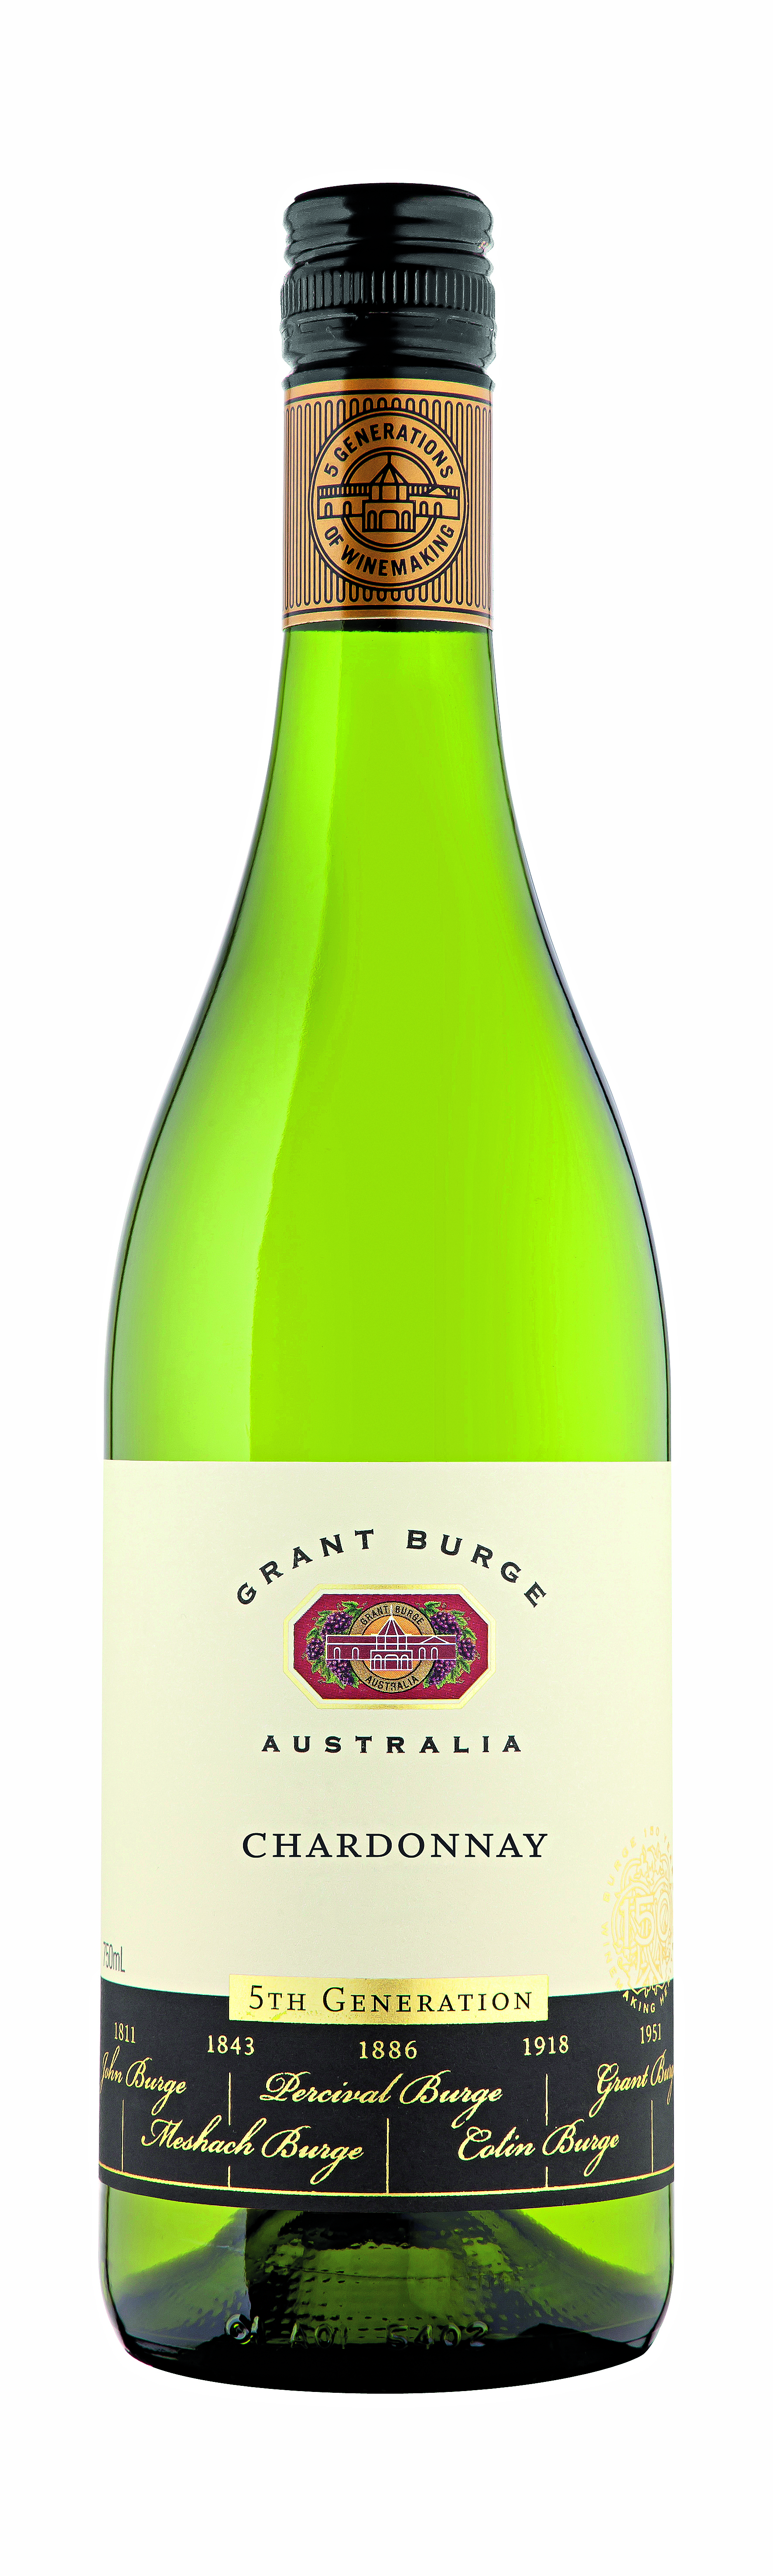 2014 Chardonnay 5th Generation Grant Burge South Australia